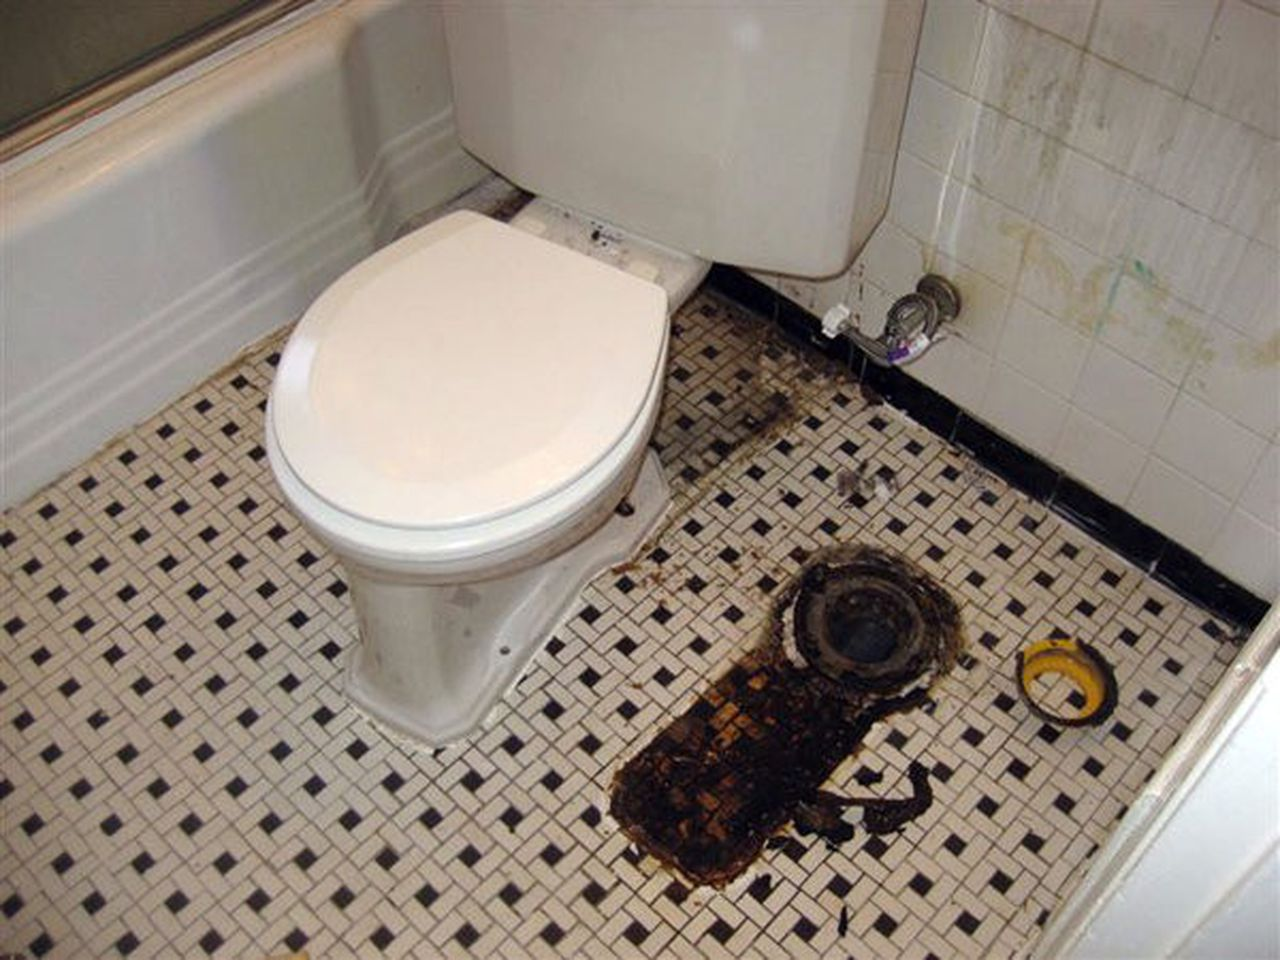 If Toilet Isn T Sitting Pretty Air Can Be Pretty Foul Faulty Seal Can Let Gas Escape Mlive Com